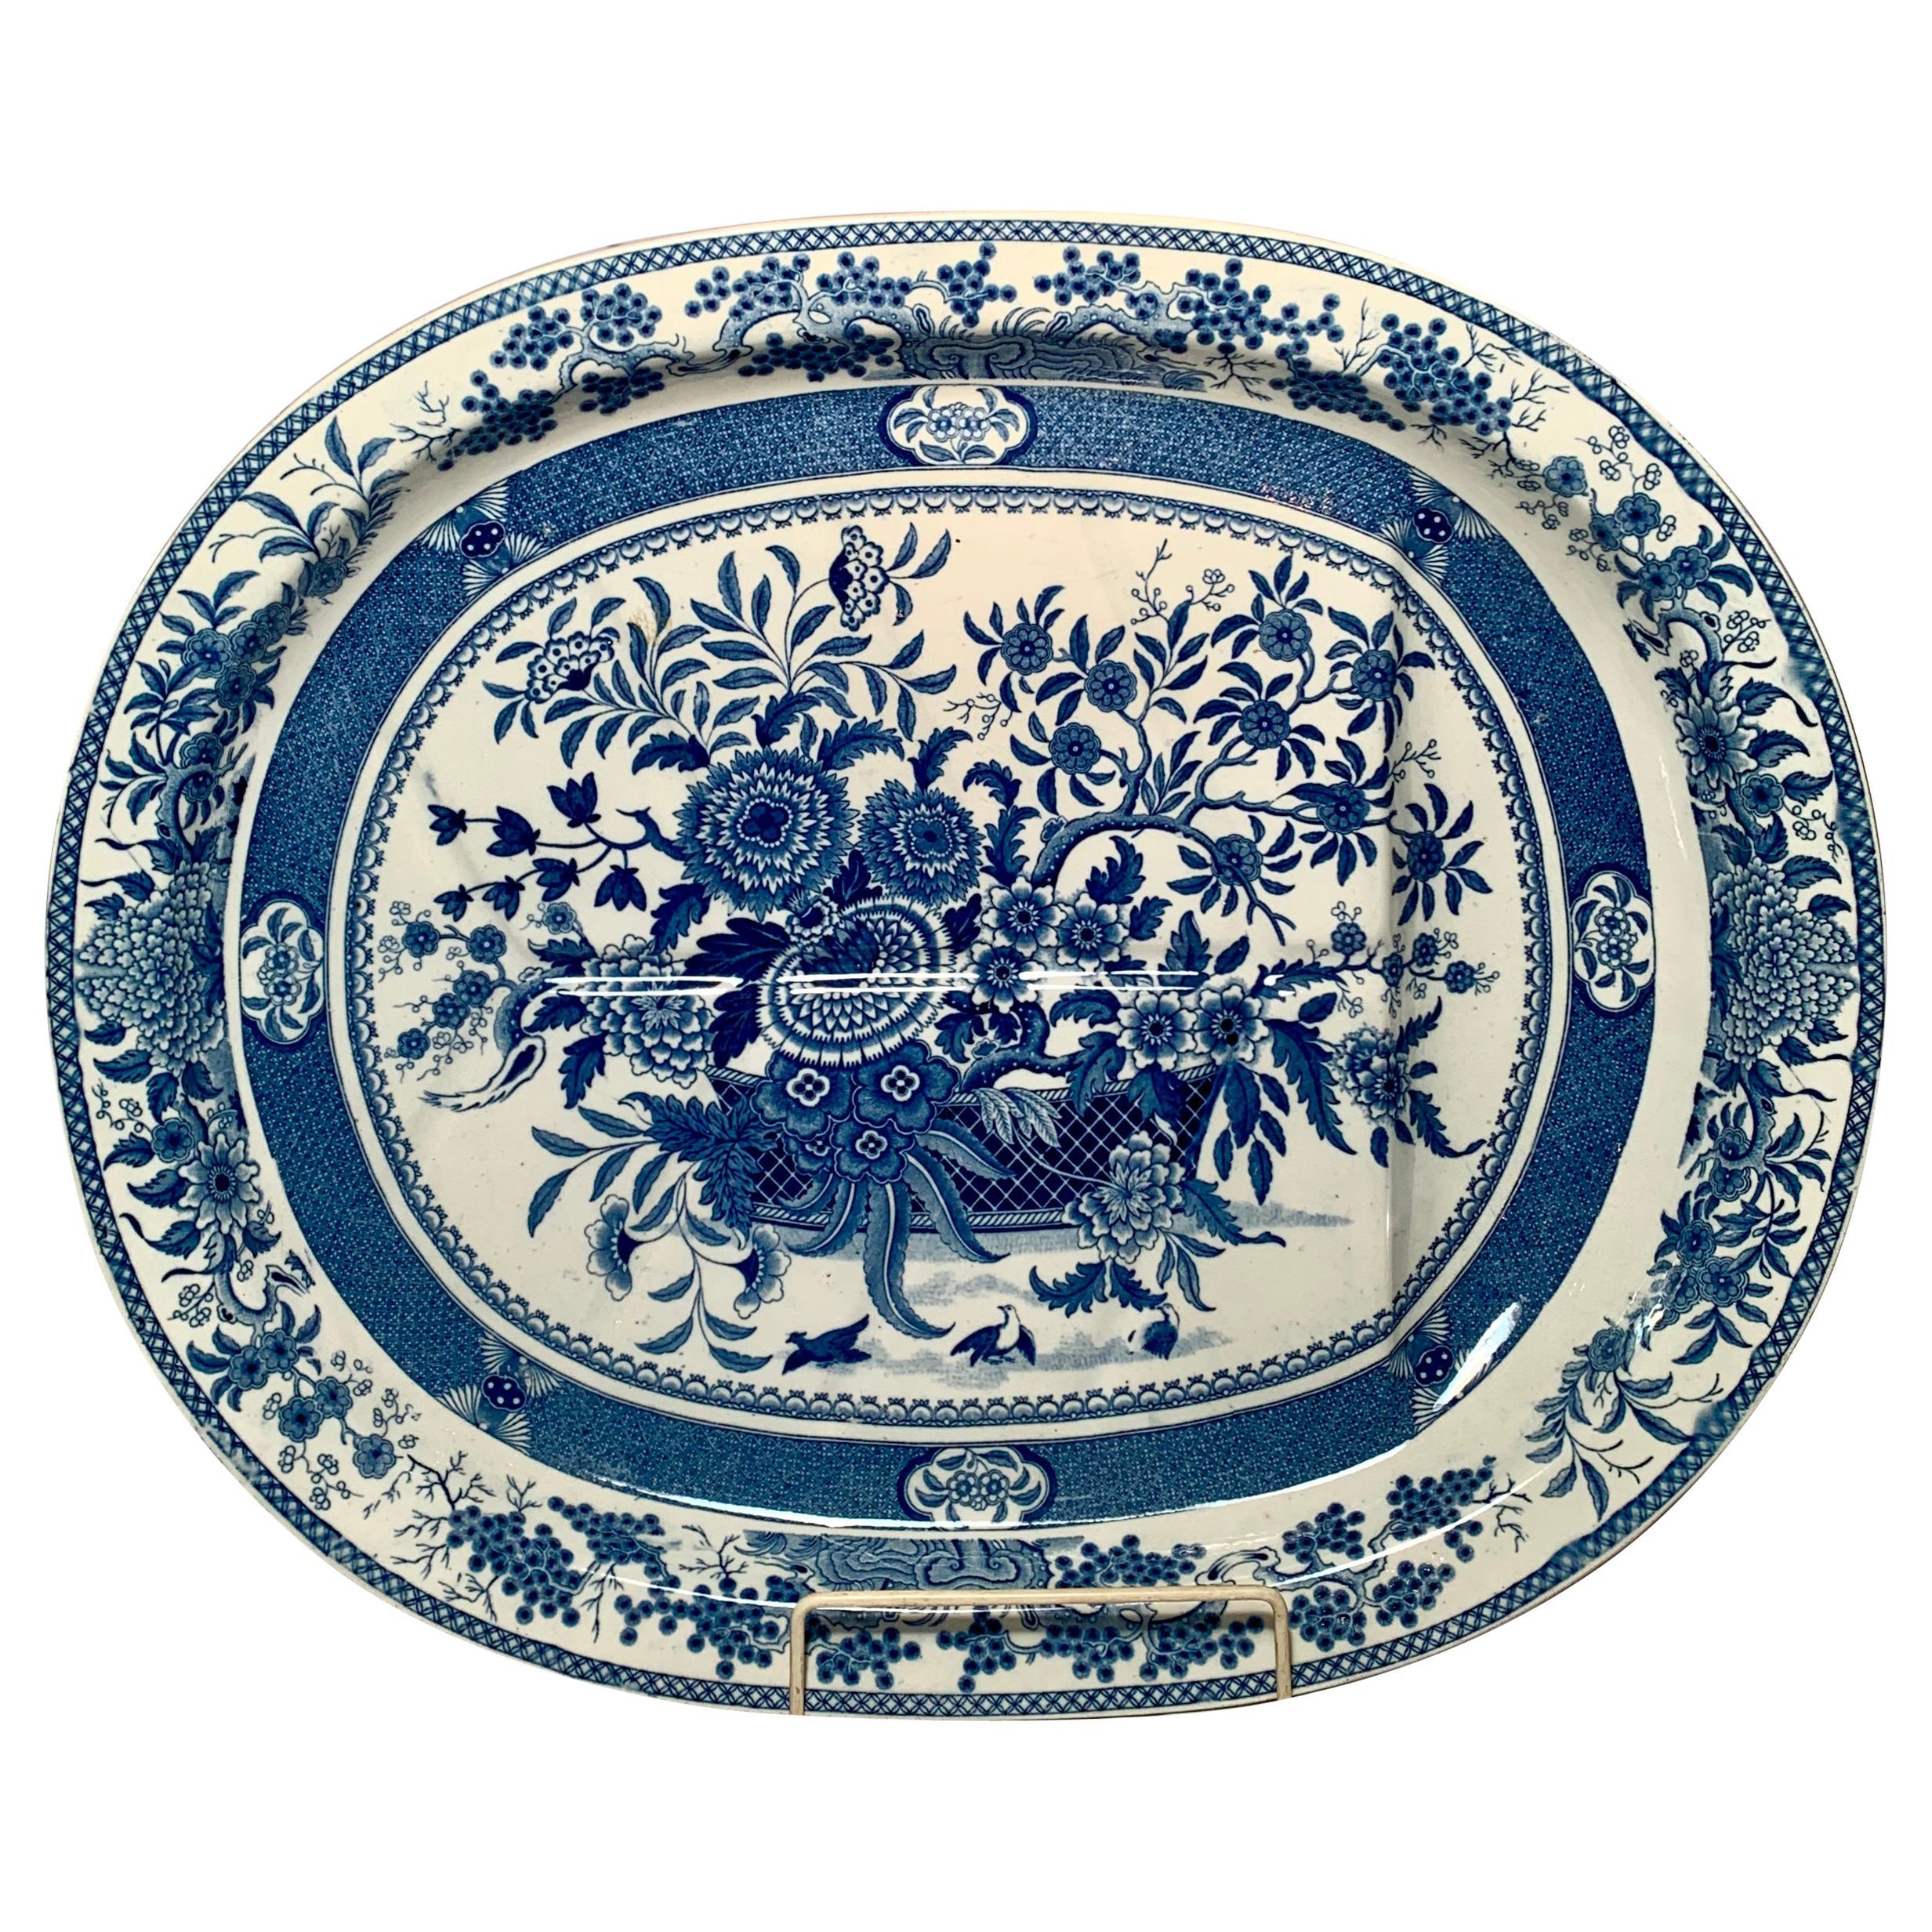 Antique English Spode Meat Tray with Well, circa 1860